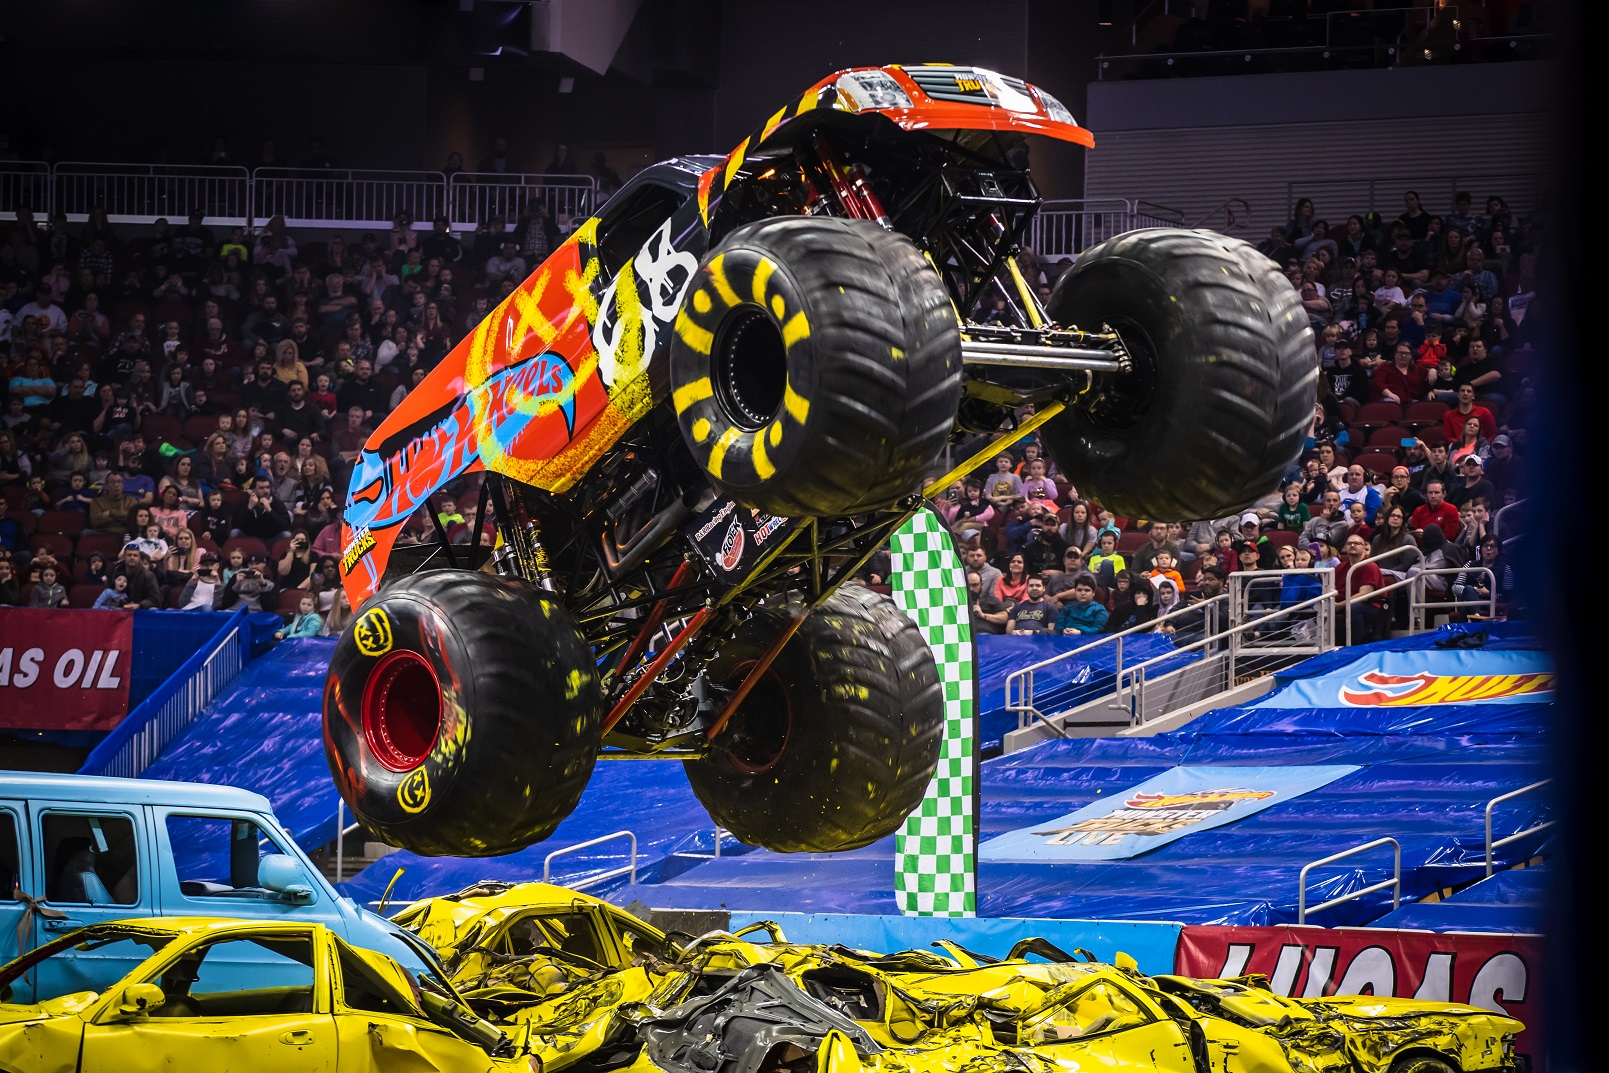 Monster Truck Show 2020.Hot Wheels Monster Trucks Live 2020 European Tour